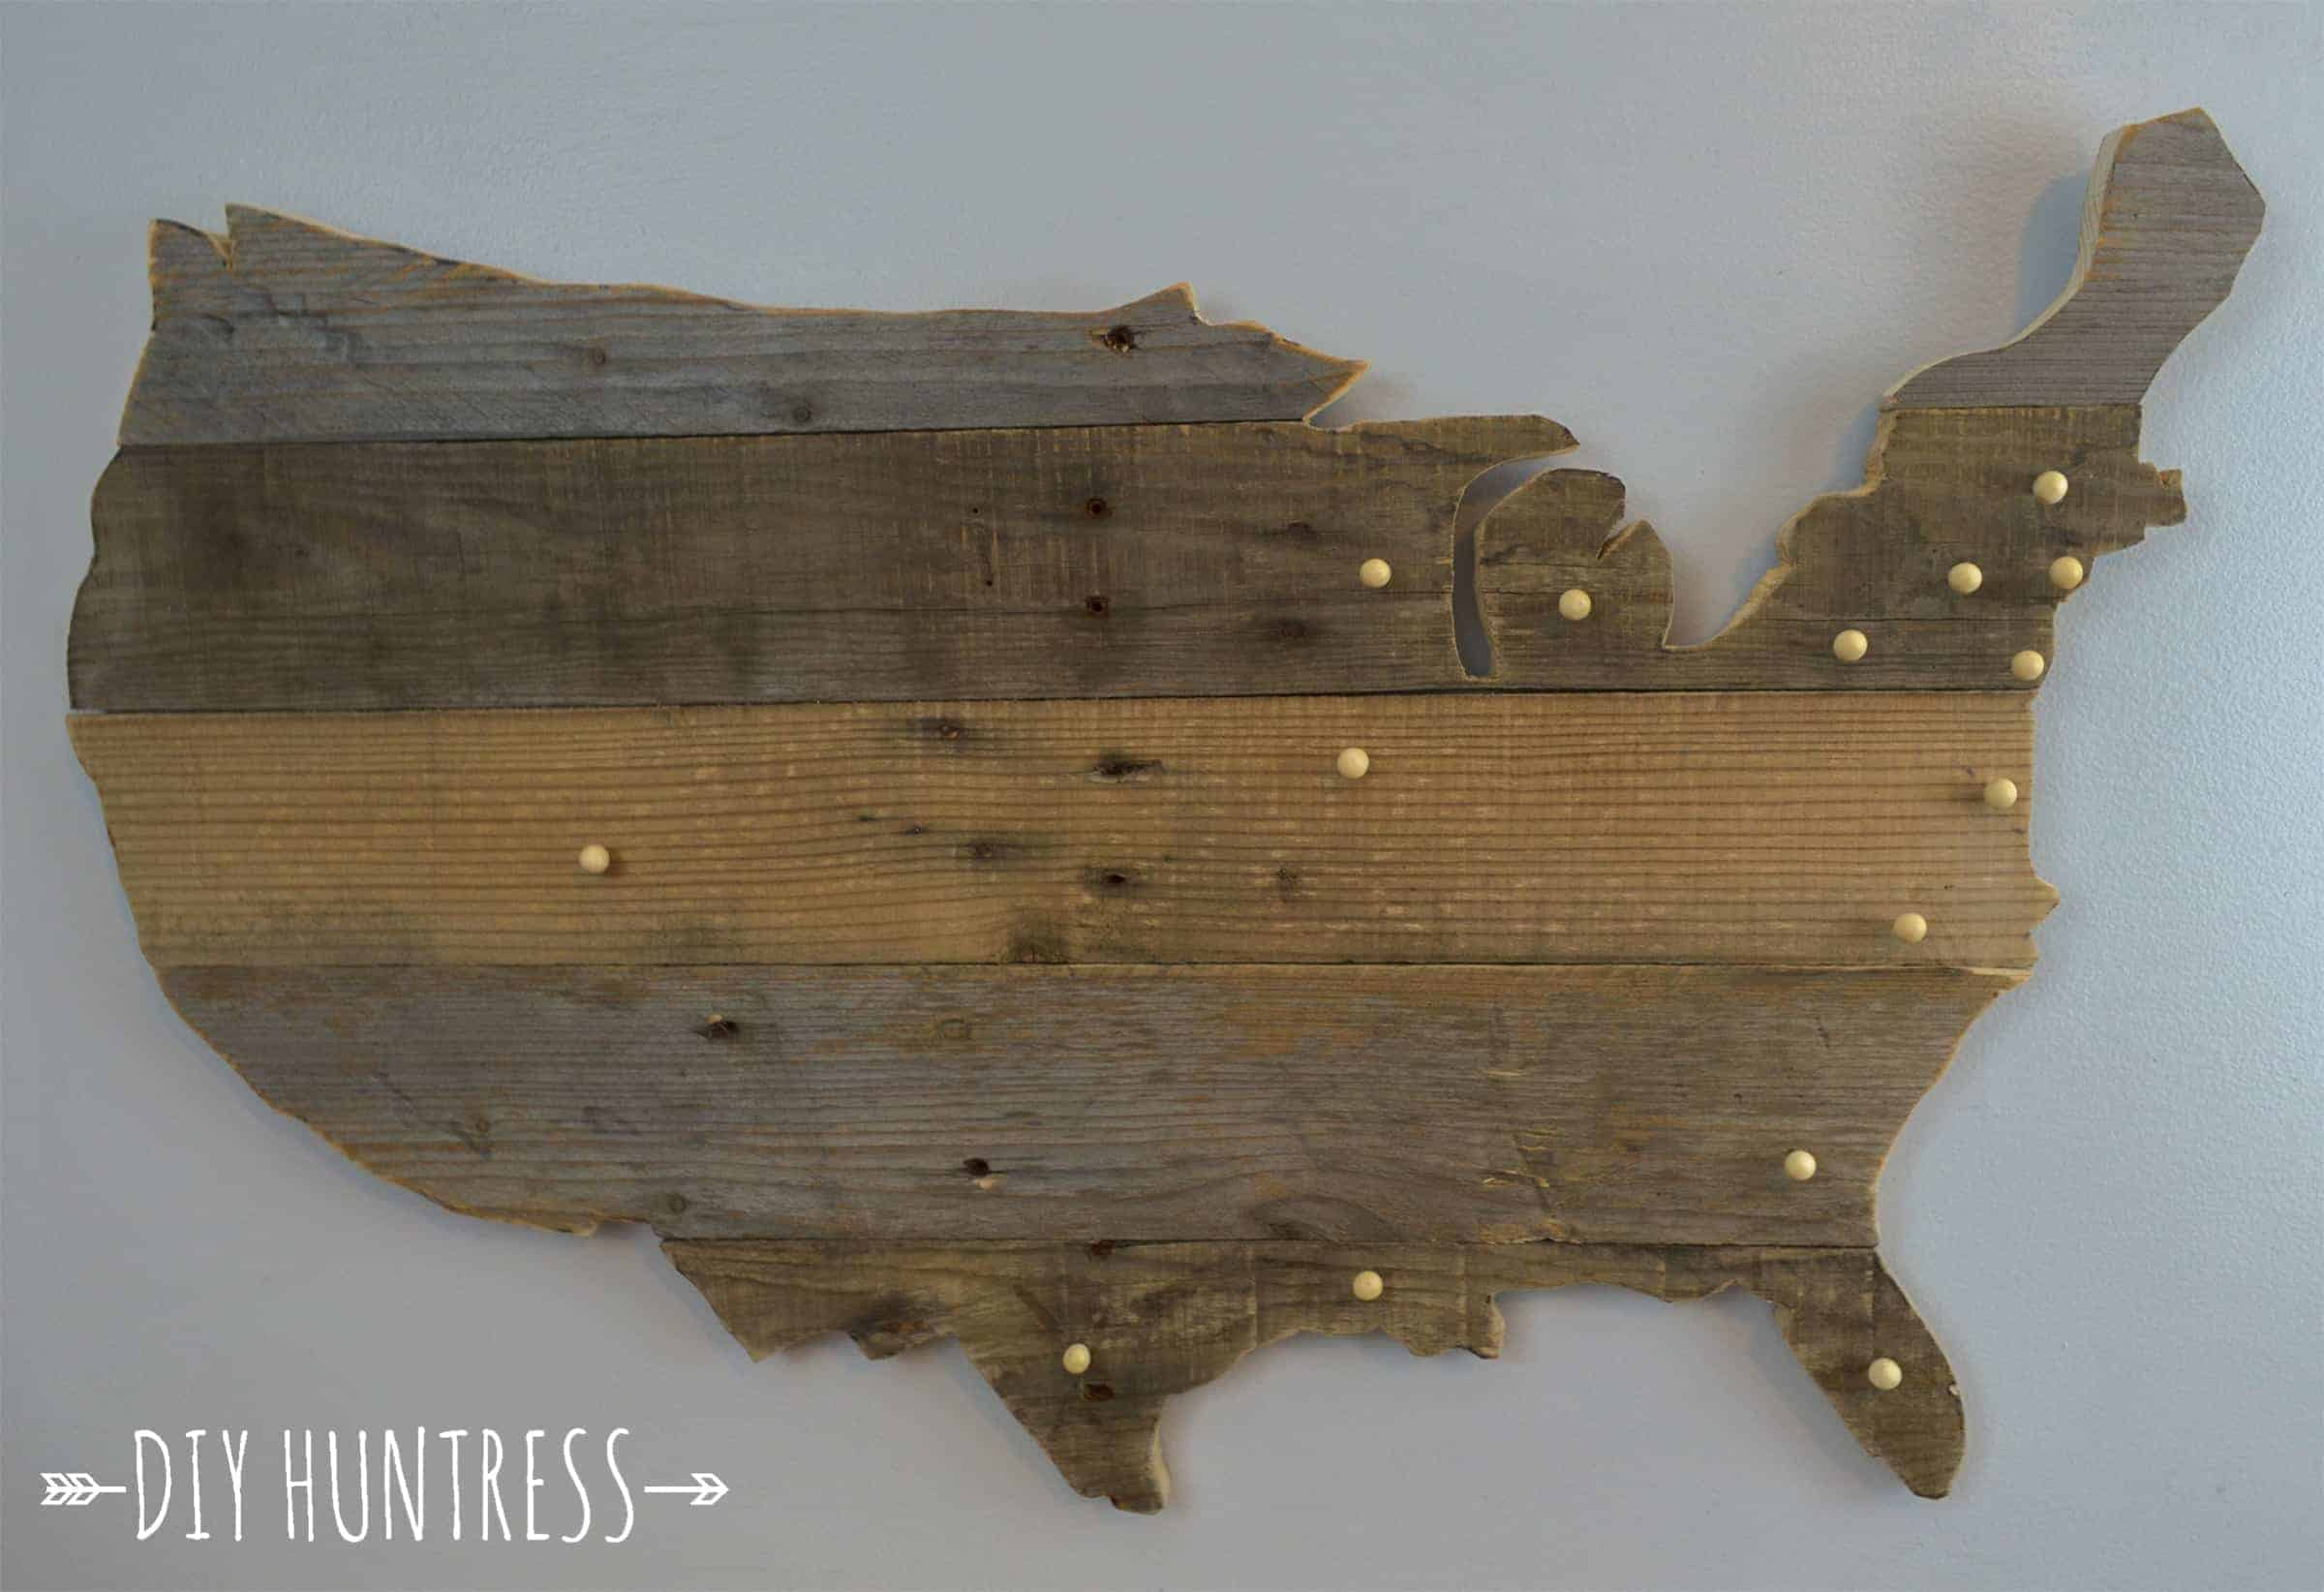 Map of the USA made from reclaimed wood pallets with pins